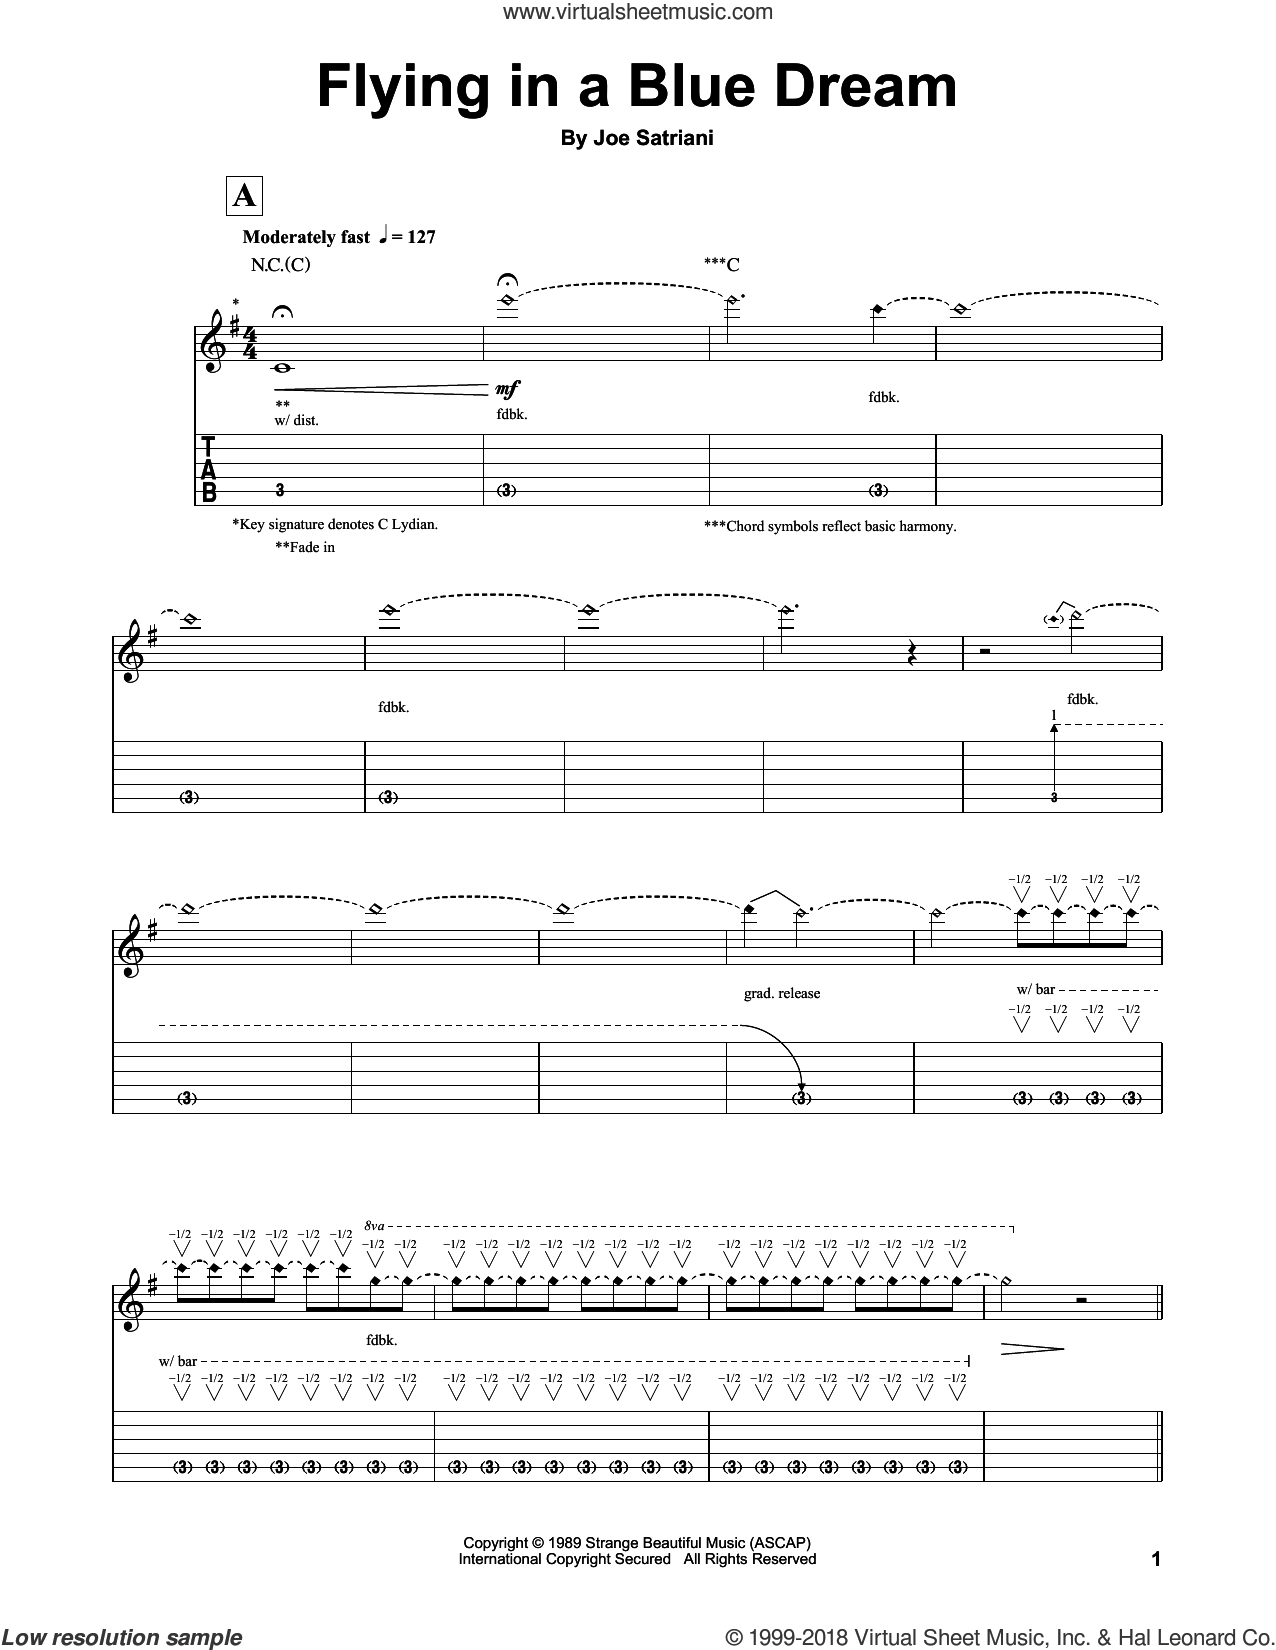 Flying In A Blue Dream sheet music for guitar (tablature, play-along) by Joe Satriani. Score Image Preview.